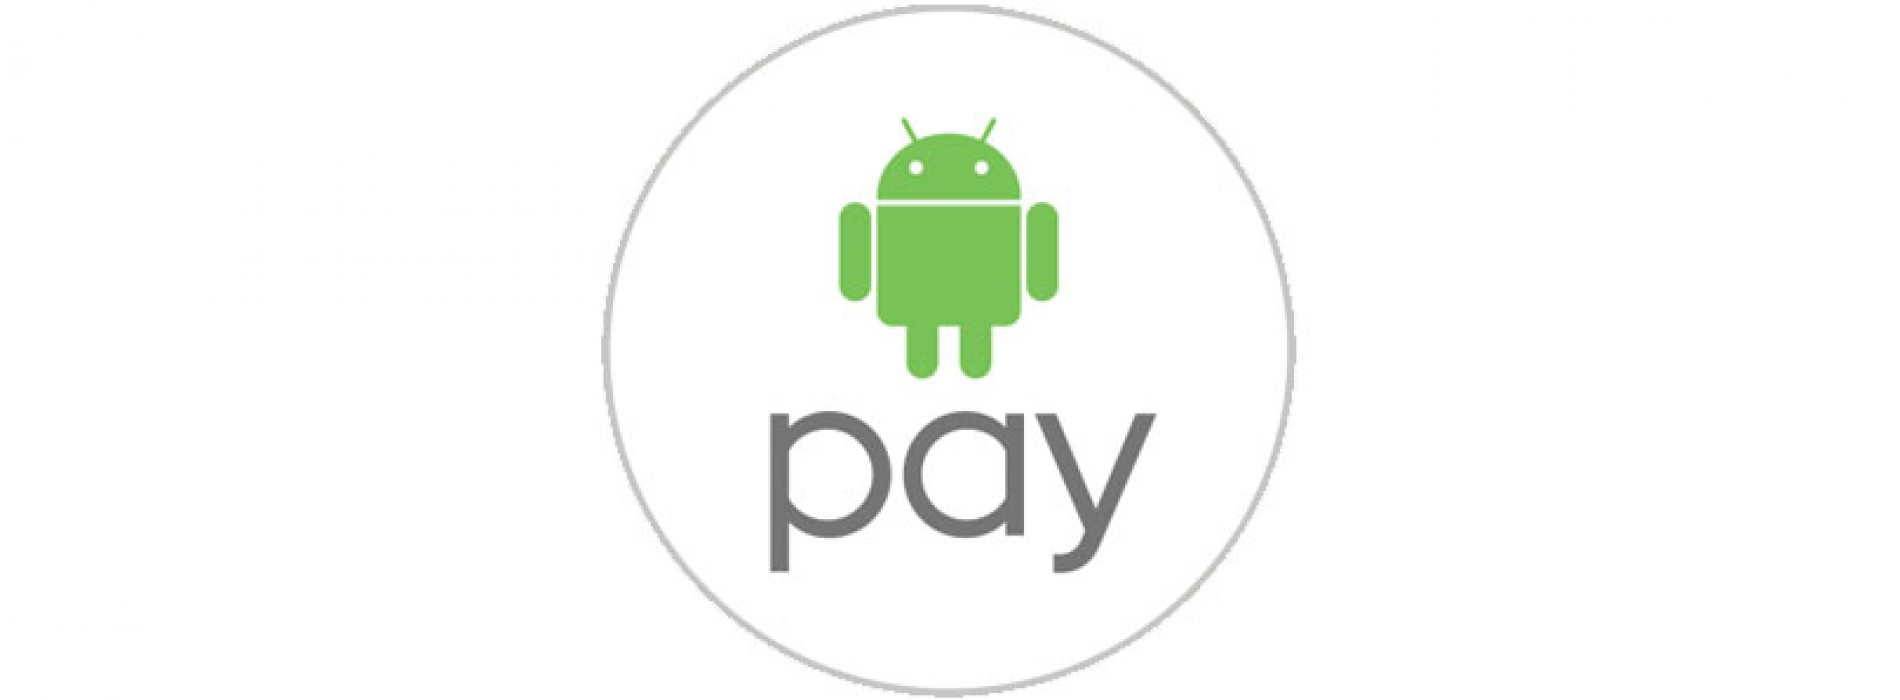 Use Android Pay for a chance to win a free Chromecast